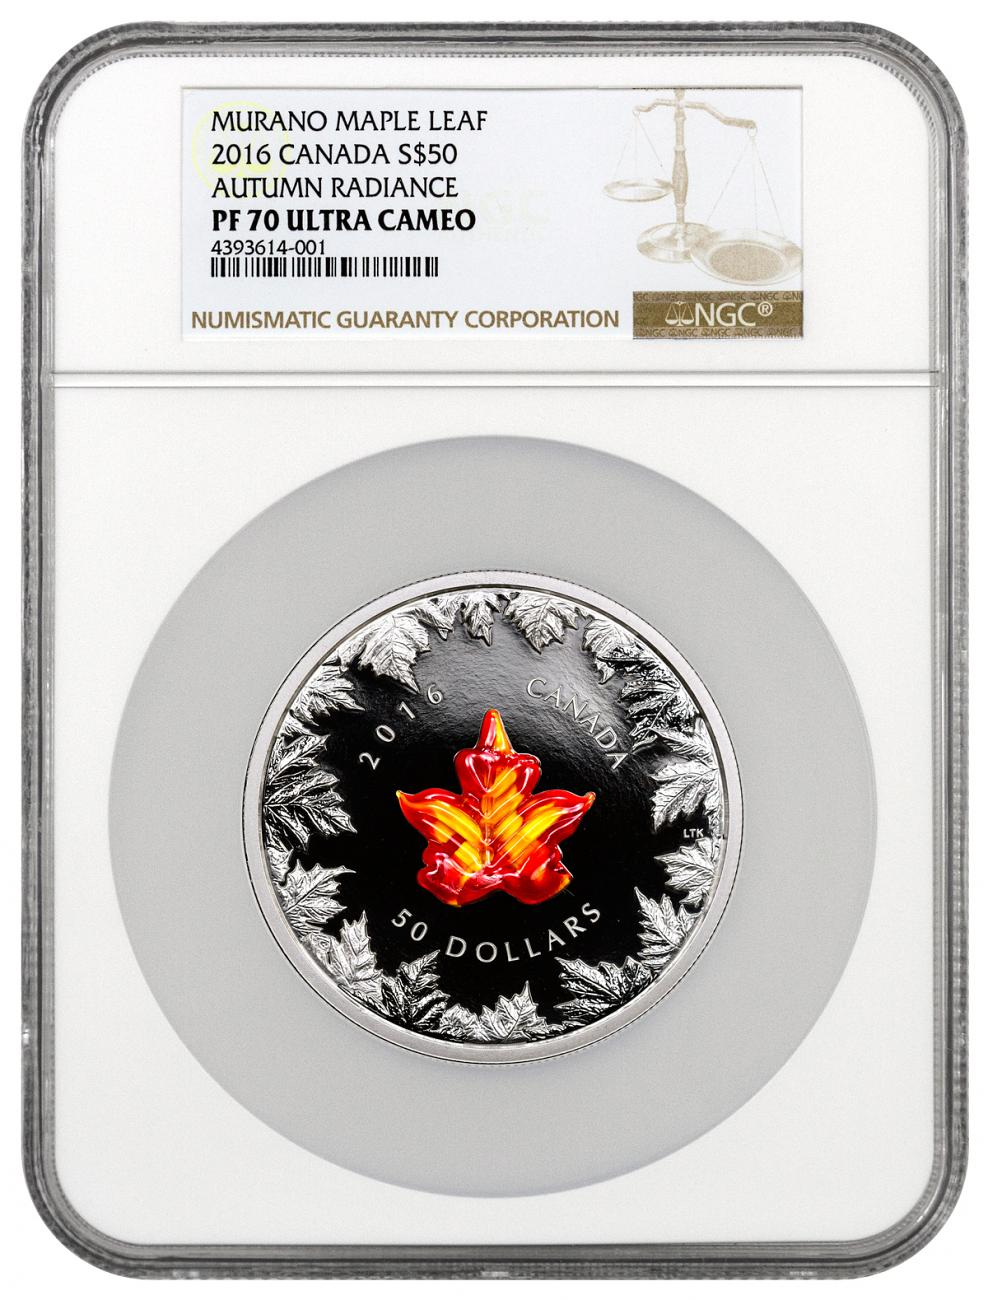 2016 Canada $50 5 oz. Proof Silver Murano Glass Maple Leaf - Autumn Radiance - NGC PF70 UC